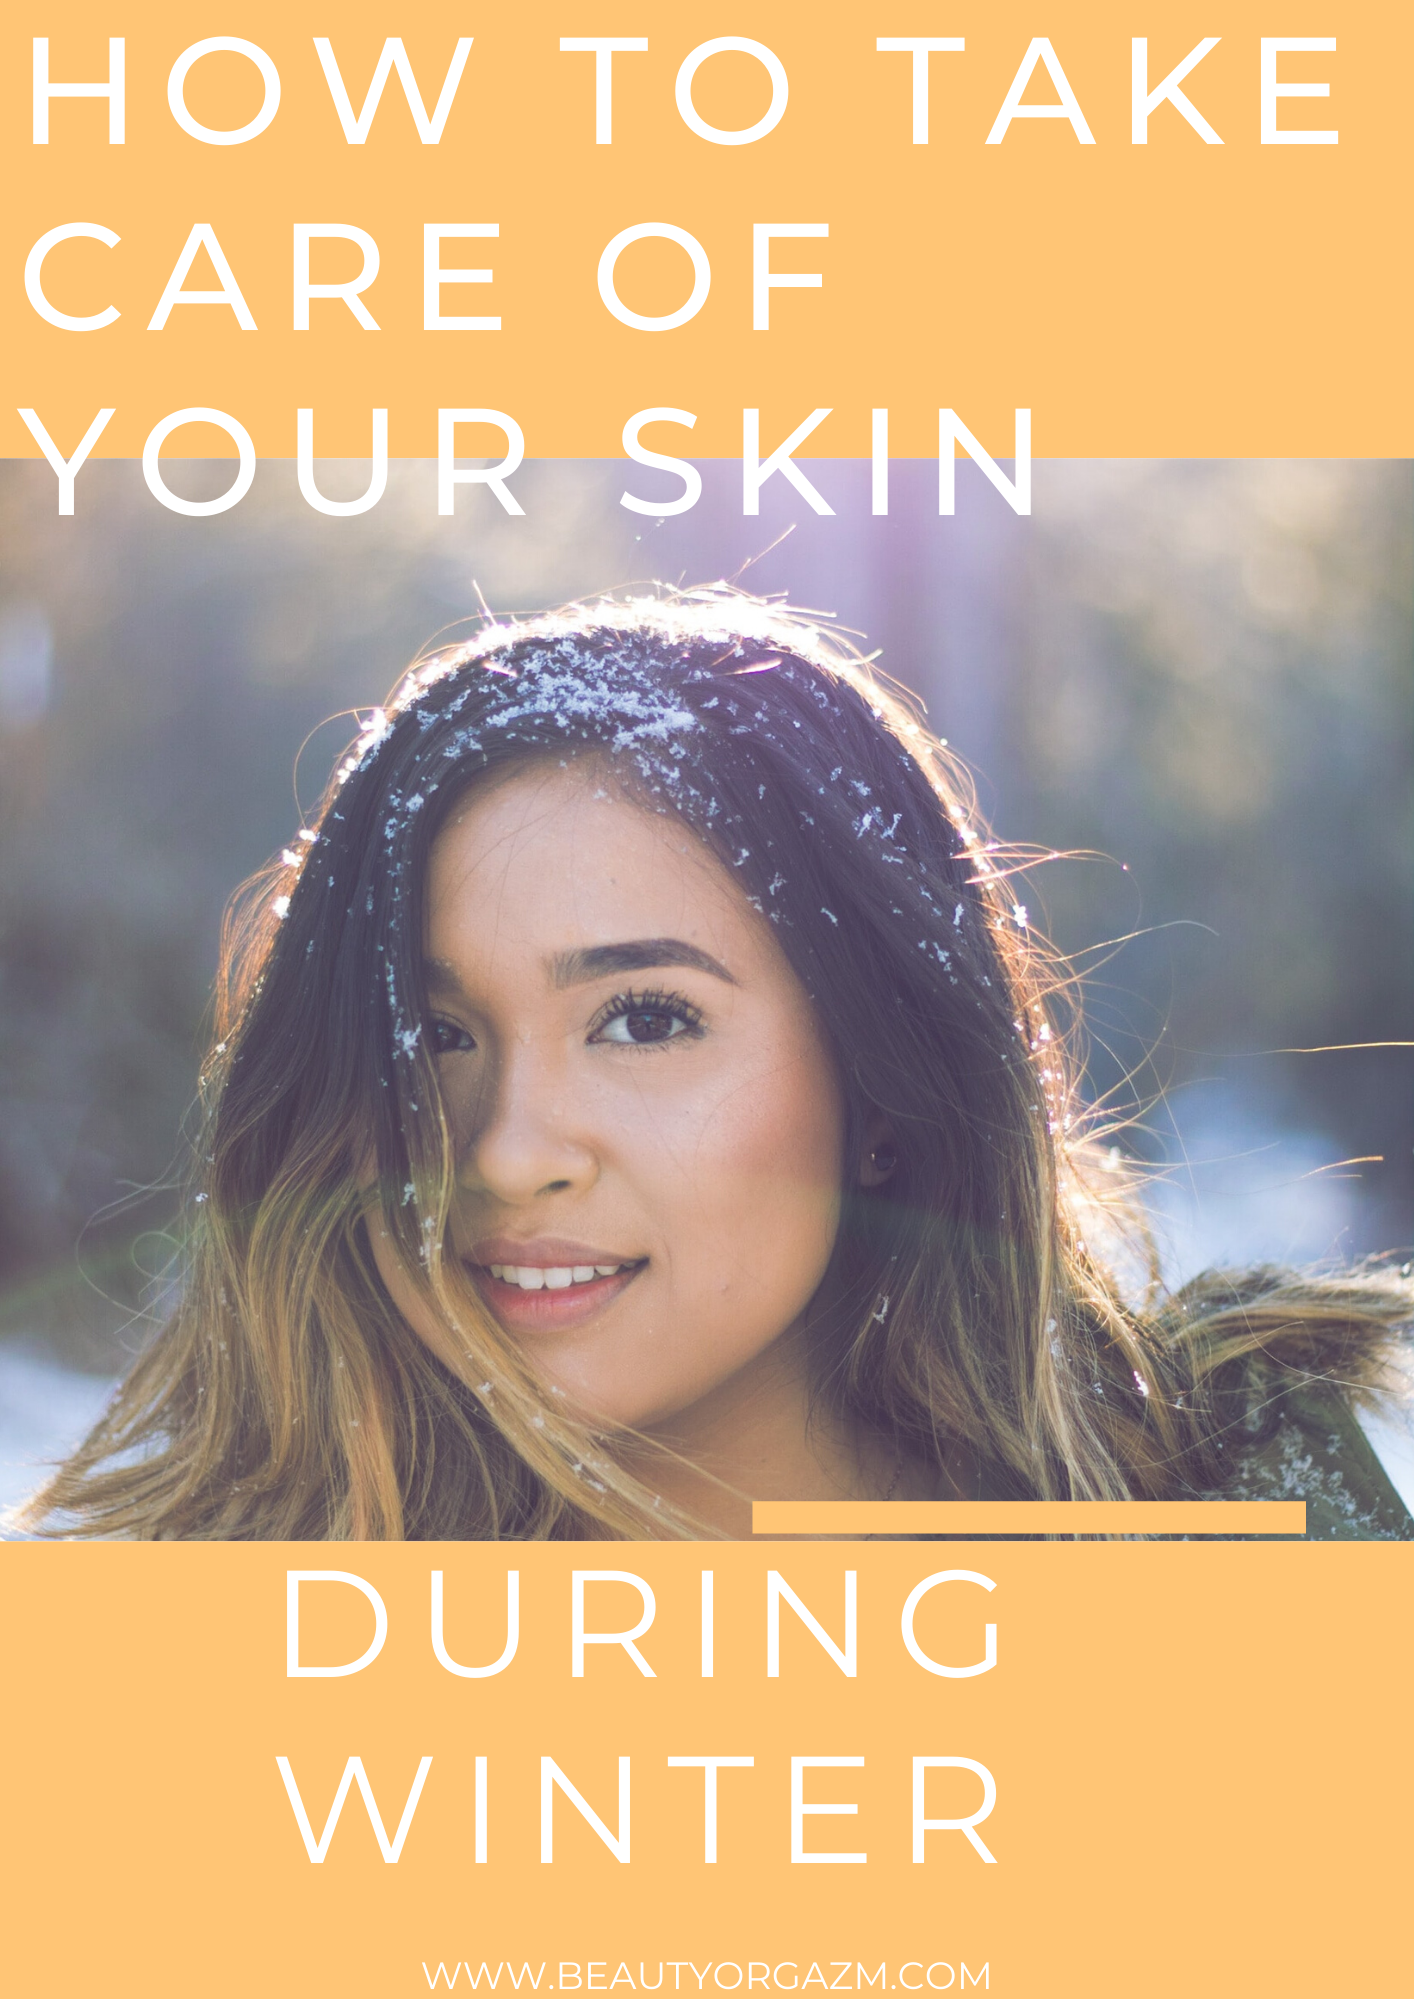 Beauty Routines For The Winter And How To Keep Skin Healthy During This Time Beauty Orgazm Winter Skin Care Winter Skin Care Routine Natural Glowing Skin